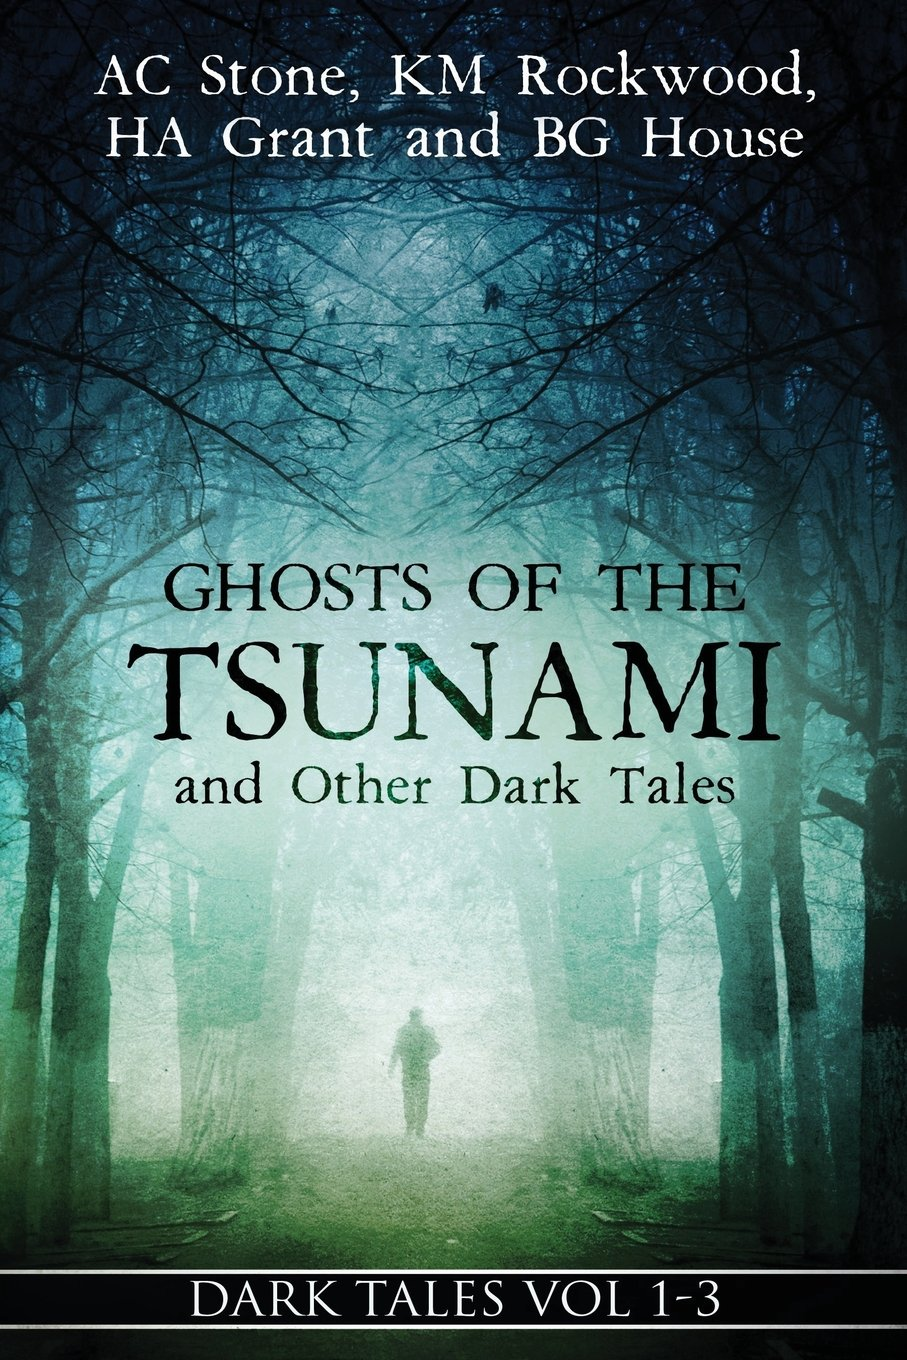 Ghosts of the Tsunami and Other Dark Tales: (Vol. 1-3) ebook